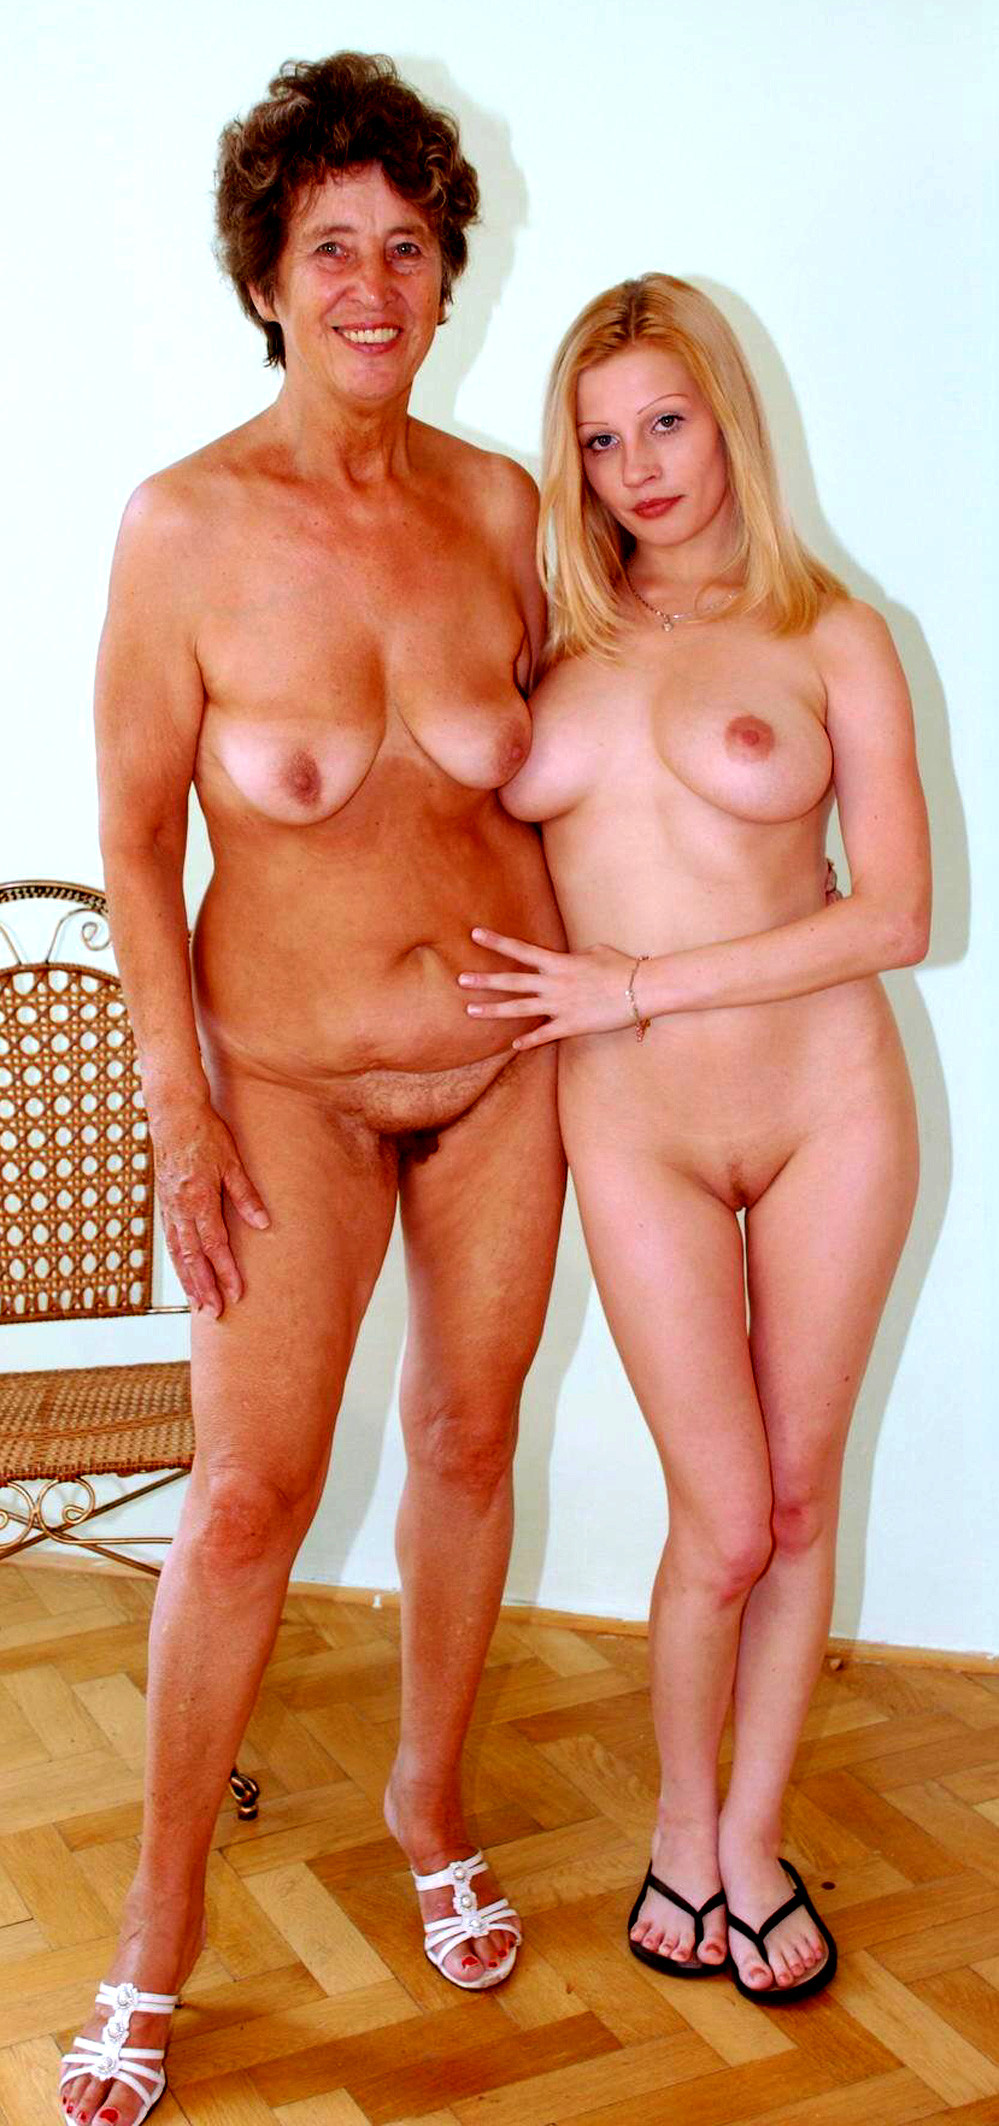 Authentic Mother And Daughter Porn Pics real mom daughter nude and real mother daughter nude photos